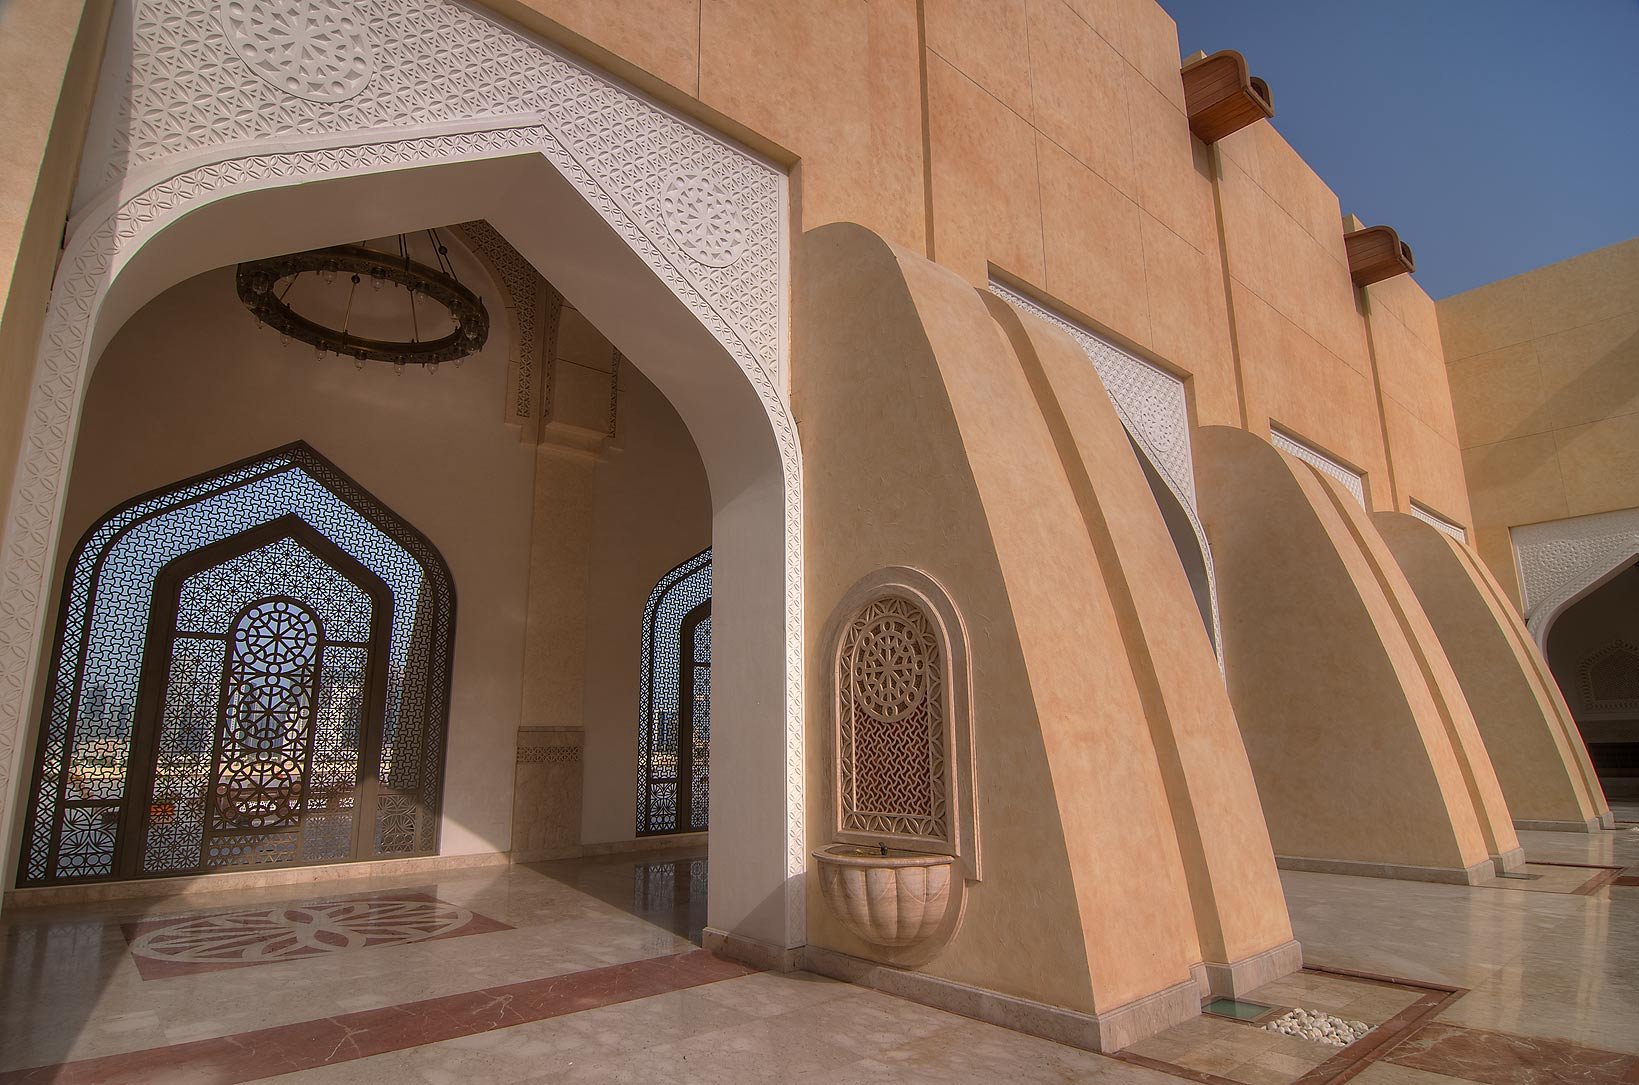 Entrance of a courtyard of State Mosque (Sheikh...Ibn Abdul Wahhab Mosque). Doha, Qatar